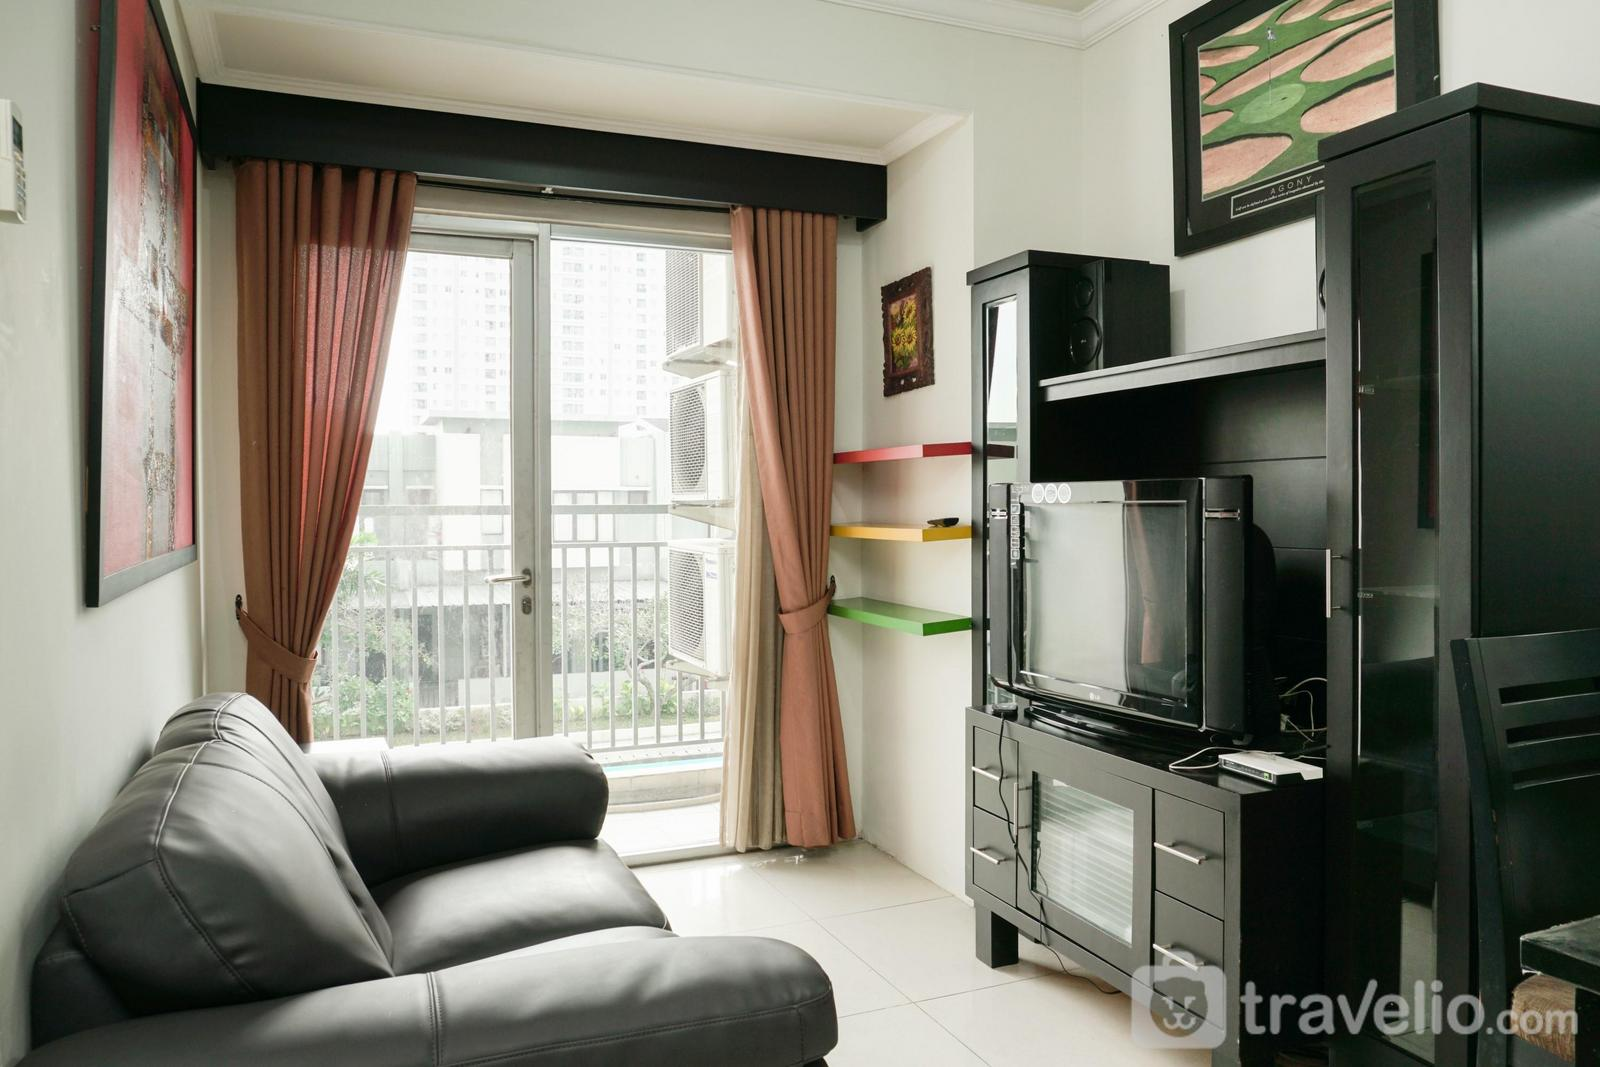 The Jakarta Residence - The Convenient 2BR Apartment at Jakarta Residence By Travelio